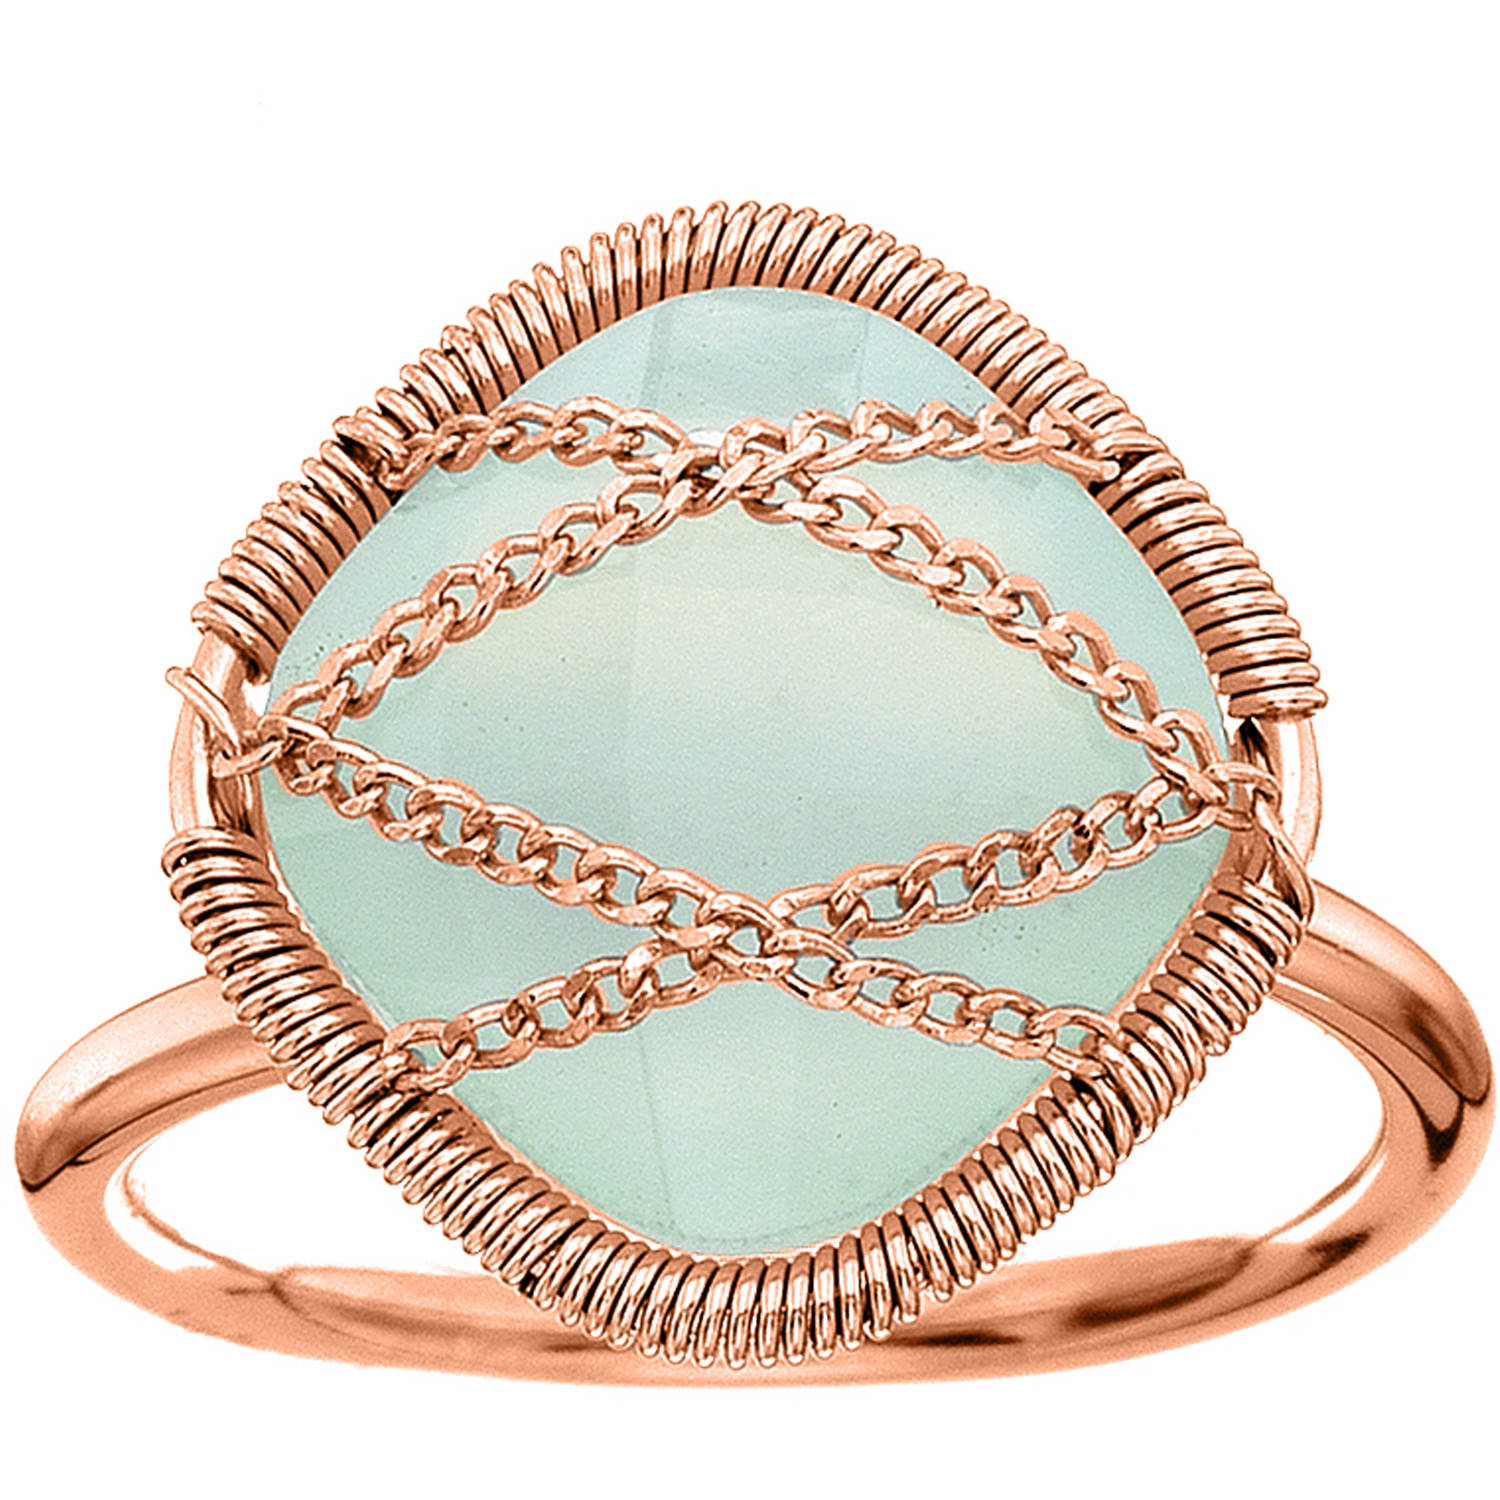 5th & Main Rose Gold over Sterling Silver Hand-Wrapped Squared Chalcedony Stone Ring by Generic